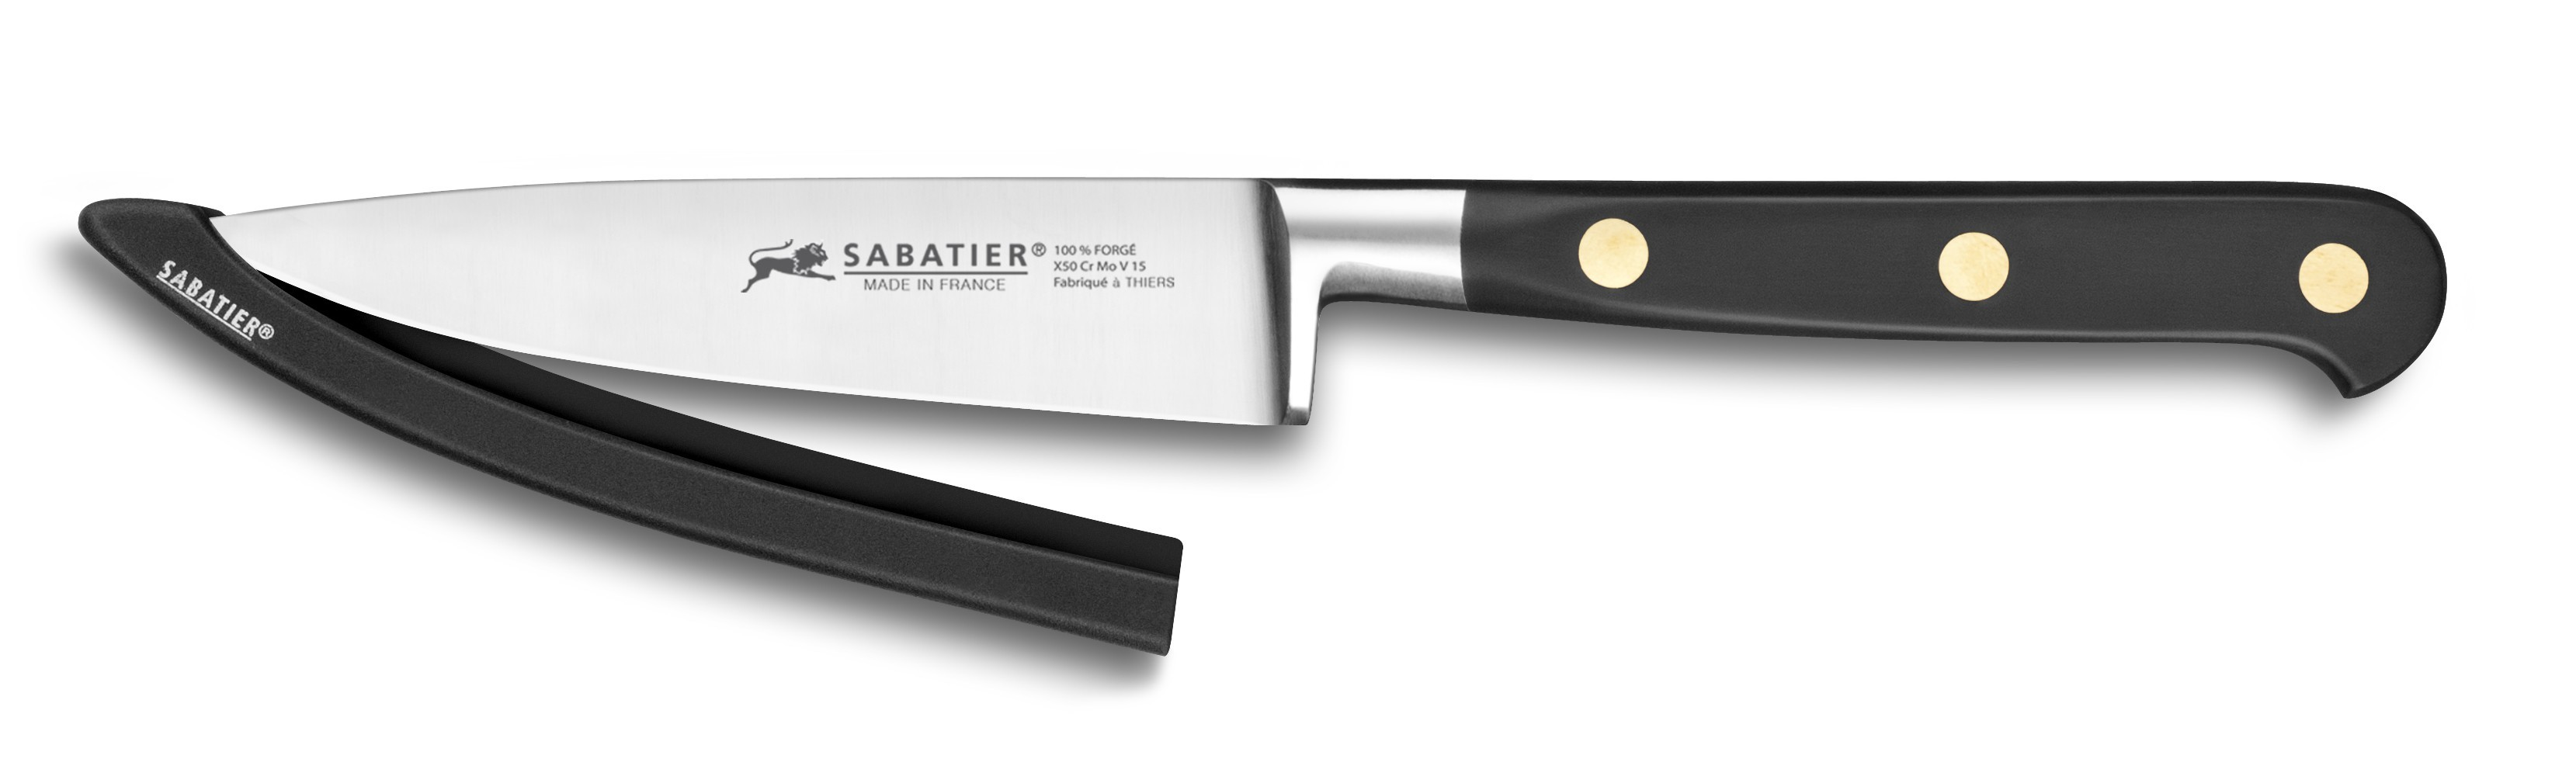 sabatier set of 4 blade guards for your kitchen knives